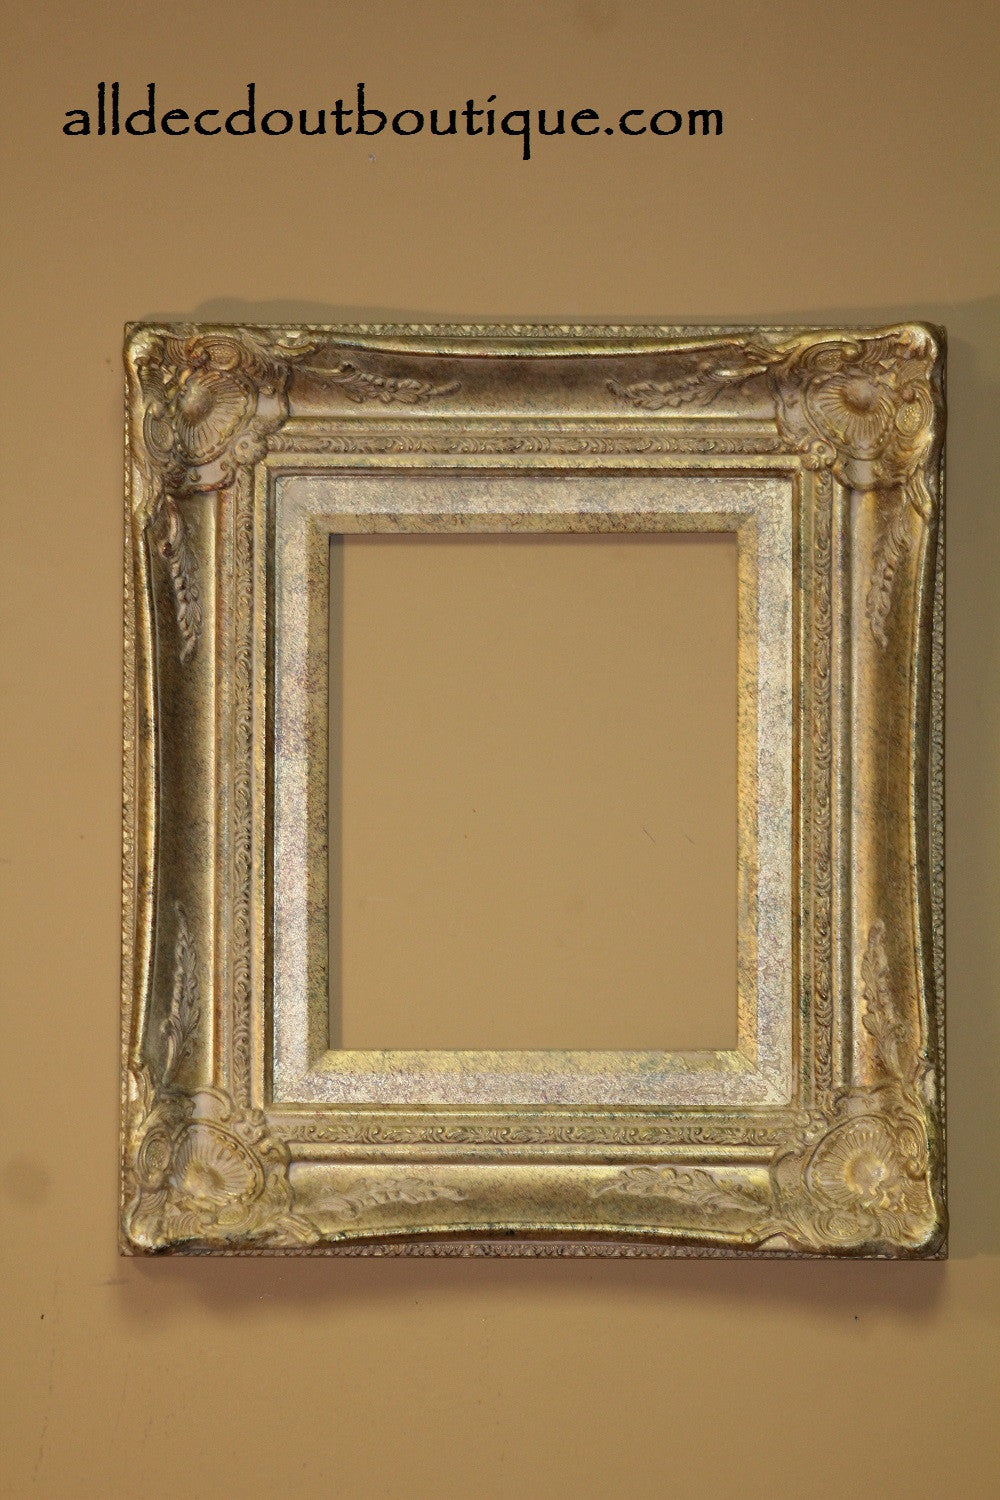 Decorative Picture Frame| 8